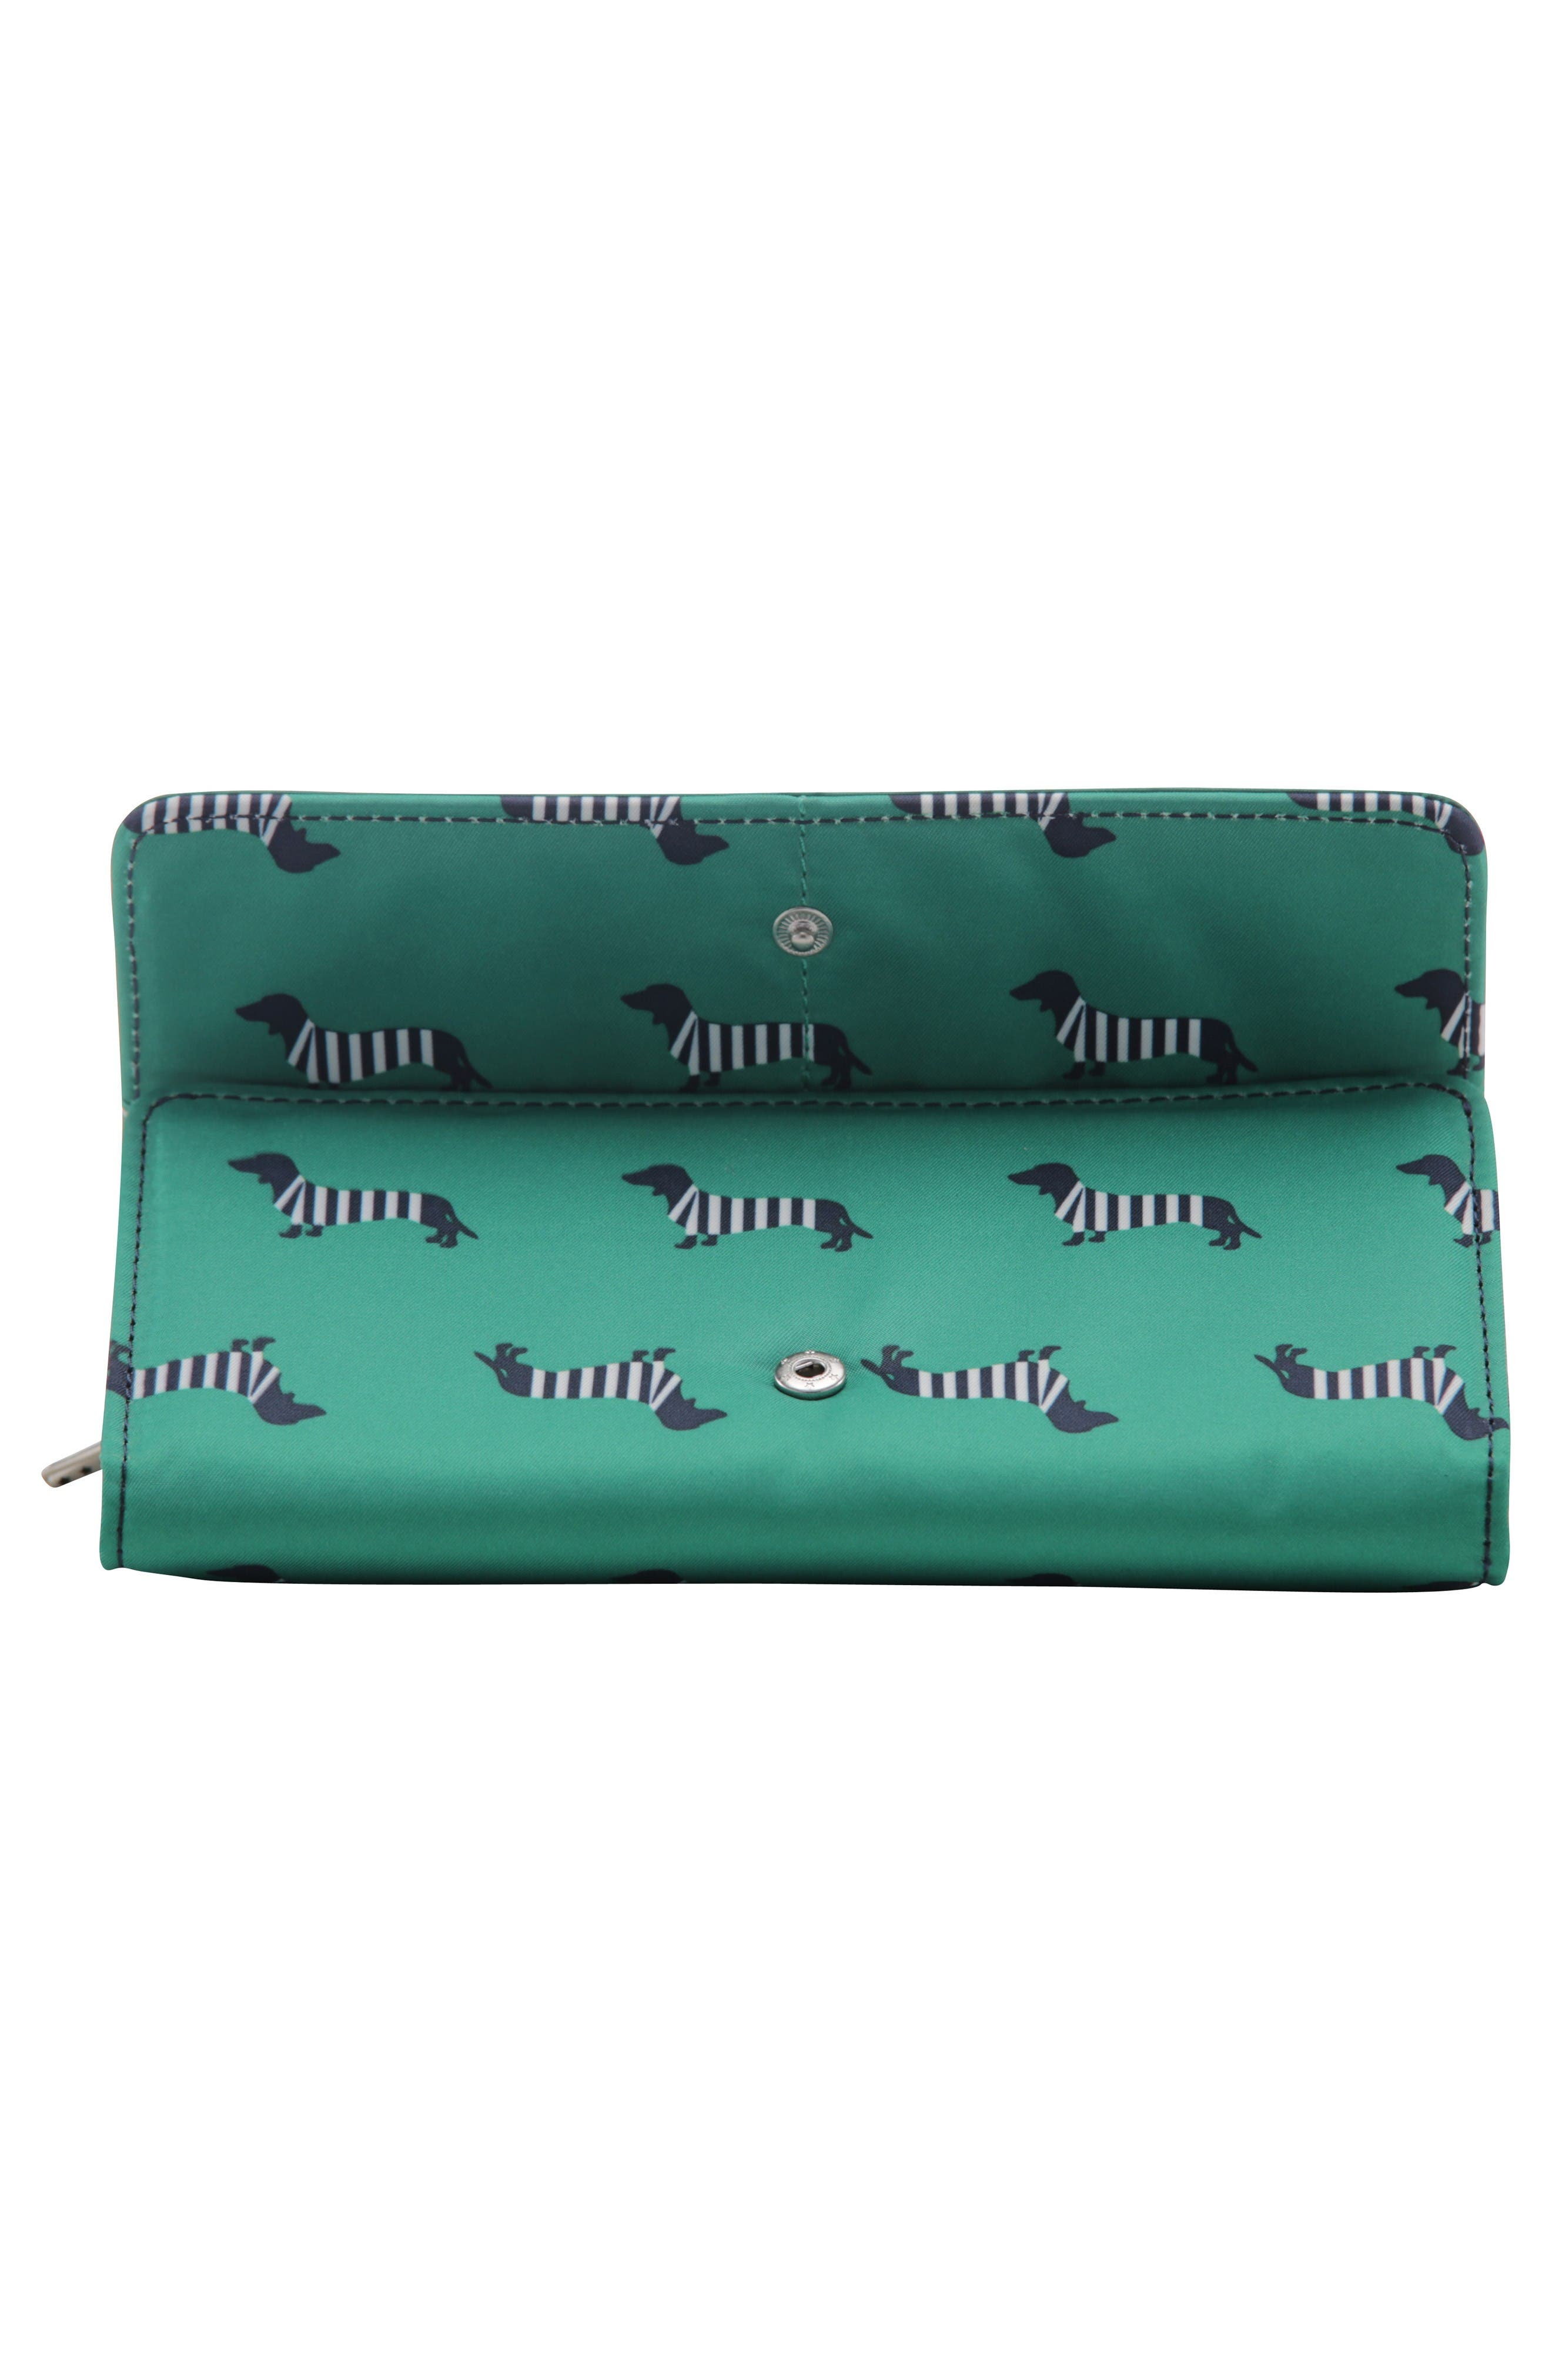 Be Rich - Coastal Collection Trifold Clutch Wallet,                             Alternate thumbnail 2, color,                             Coney Island